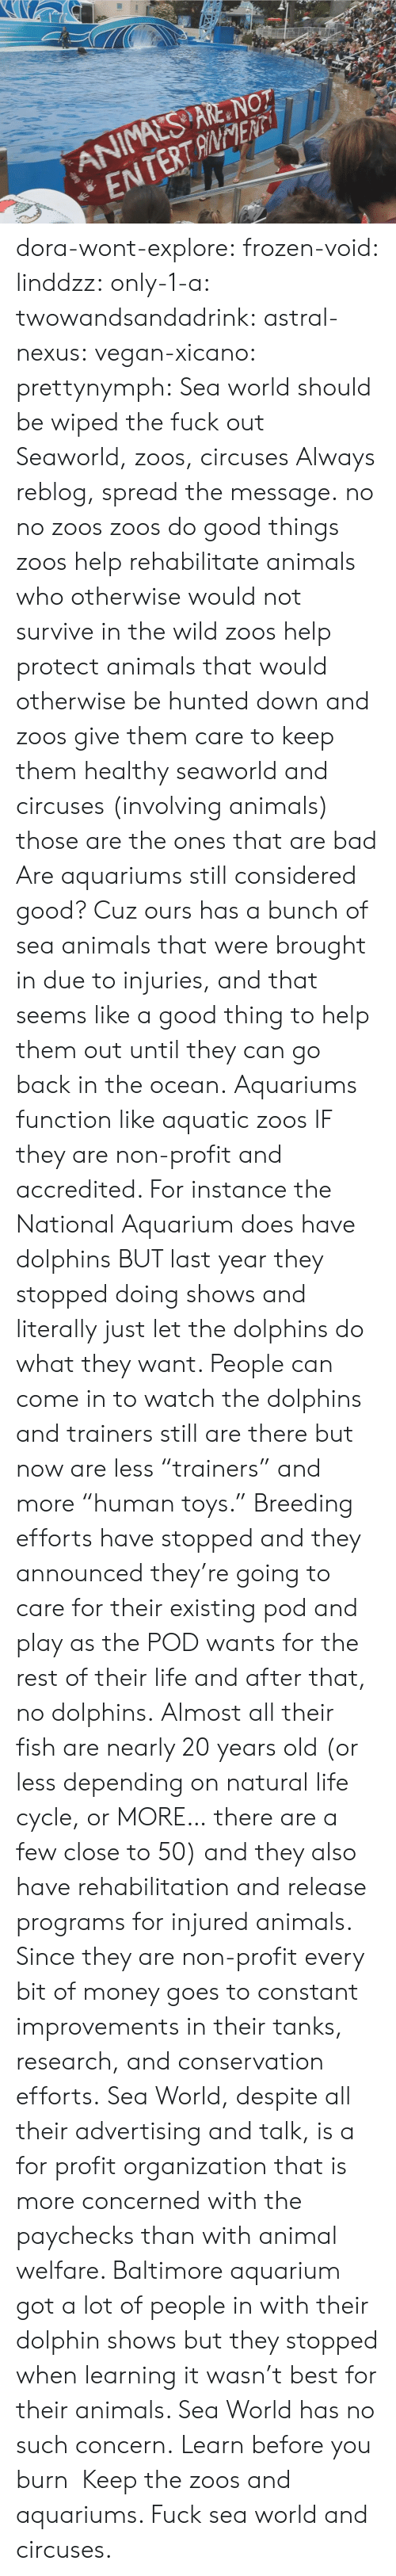 "Conservation: ANIMALS ARE NOT  ENTERTANENTi dora-wont-explore:   frozen-void:  linddzz:  only-1-a:  twowandsandadrink:  astral-nexus:  vegan-xicano:  prettynymph:  Sea world should be wiped the fuck out  Seaworld, zoos, circuses  Always reblog, spread the message.  no no zoos zoos do good things zoos help rehabilitate animals who otherwise would not survive in the wild zoos help protect animals that would otherwise be hunted down and zoos give them care to keep them healthy seaworld and circuses (involving animals) those are the ones that are bad  Are aquariums still considered good? Cuz ours has a bunch of sea animals that were brought in due to injuries, and that seems like a good thing to help them out until they can go back in the ocean.  Aquariums function like aquatic zoos IF they are non-profit and accredited. For instance the National Aquarium does have dolphins BUT last year they stopped doing shows and literally just let the dolphins do what they want. People can come in to watch the dolphins and trainers still are there but now are less ""trainers"" and more ""human toys."" Breeding efforts have stopped and they announced they're going to care for their existing pod and play as the POD wants for the rest of their life and after that, no dolphins. Almost all their fish are nearly 20 years old (or less depending on natural life cycle, or MORE… there are a few close to 50) and they also have rehabilitation and release programs for injured animals. Since they are non-profit every bit of money goes to constant improvements in their tanks, research, and conservation efforts. Sea World, despite all their advertising and talk, is a for profit organization that is more concerned with the paychecks than with animal welfare. Baltimore aquarium got a lot of people in with their dolphin shows but they stopped when learning it wasn't best for their animals. Sea World has no such concern.  Learn before you burn   Keep the zoos and aquariums. Fuck sea world and circuses."